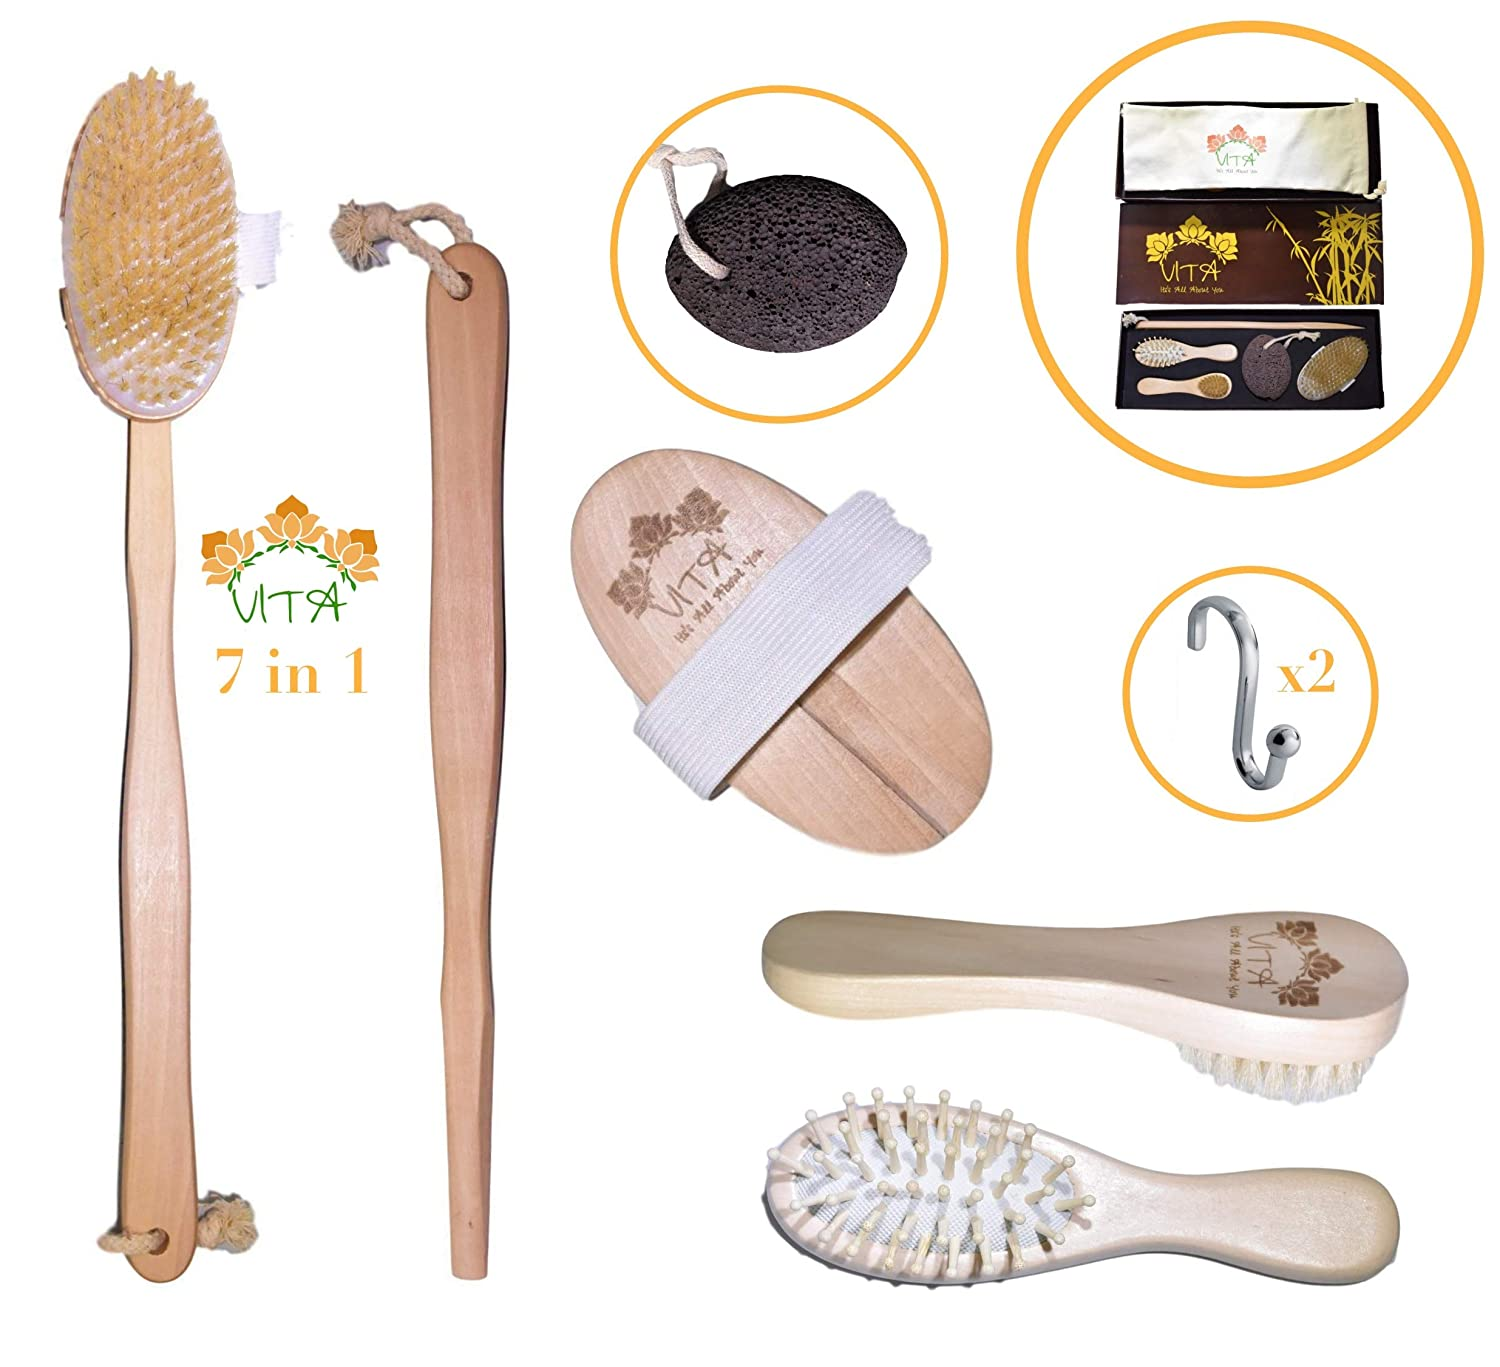 VITA Dry Brushing Body Brush - 7 Piece - Keratosis Pilaris Treatment 100% Boar Bristle Dry Body Brush Set, Face & Body Exfoliating Brush, Pumice Stone, Hair Brush & Carry Bag in Gift Box VITA Melius